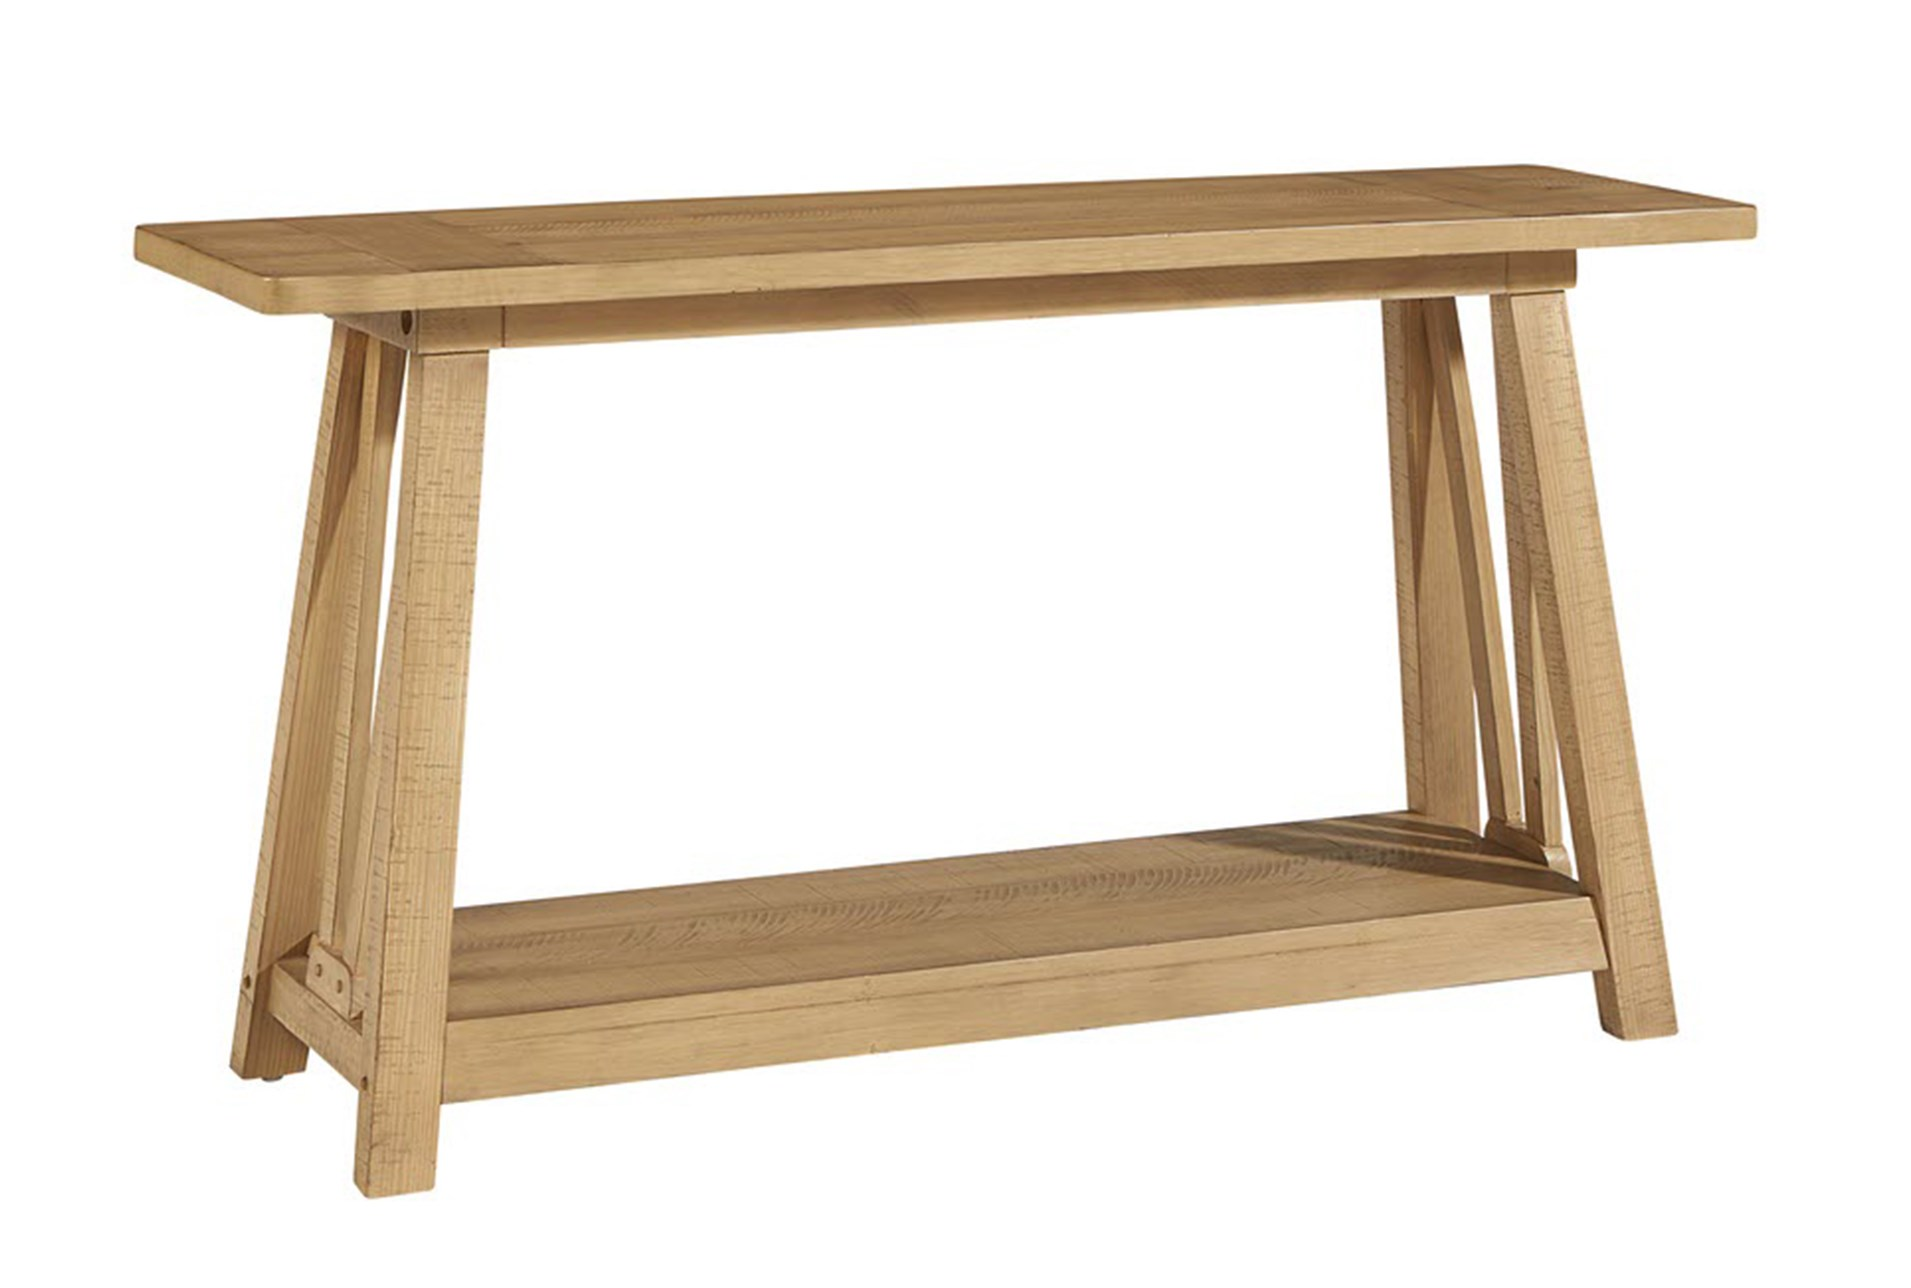 Magnolia Home Joiners Console Table By Joanna Gaines Qty 1 Has Been Successfully Added To Your Cart